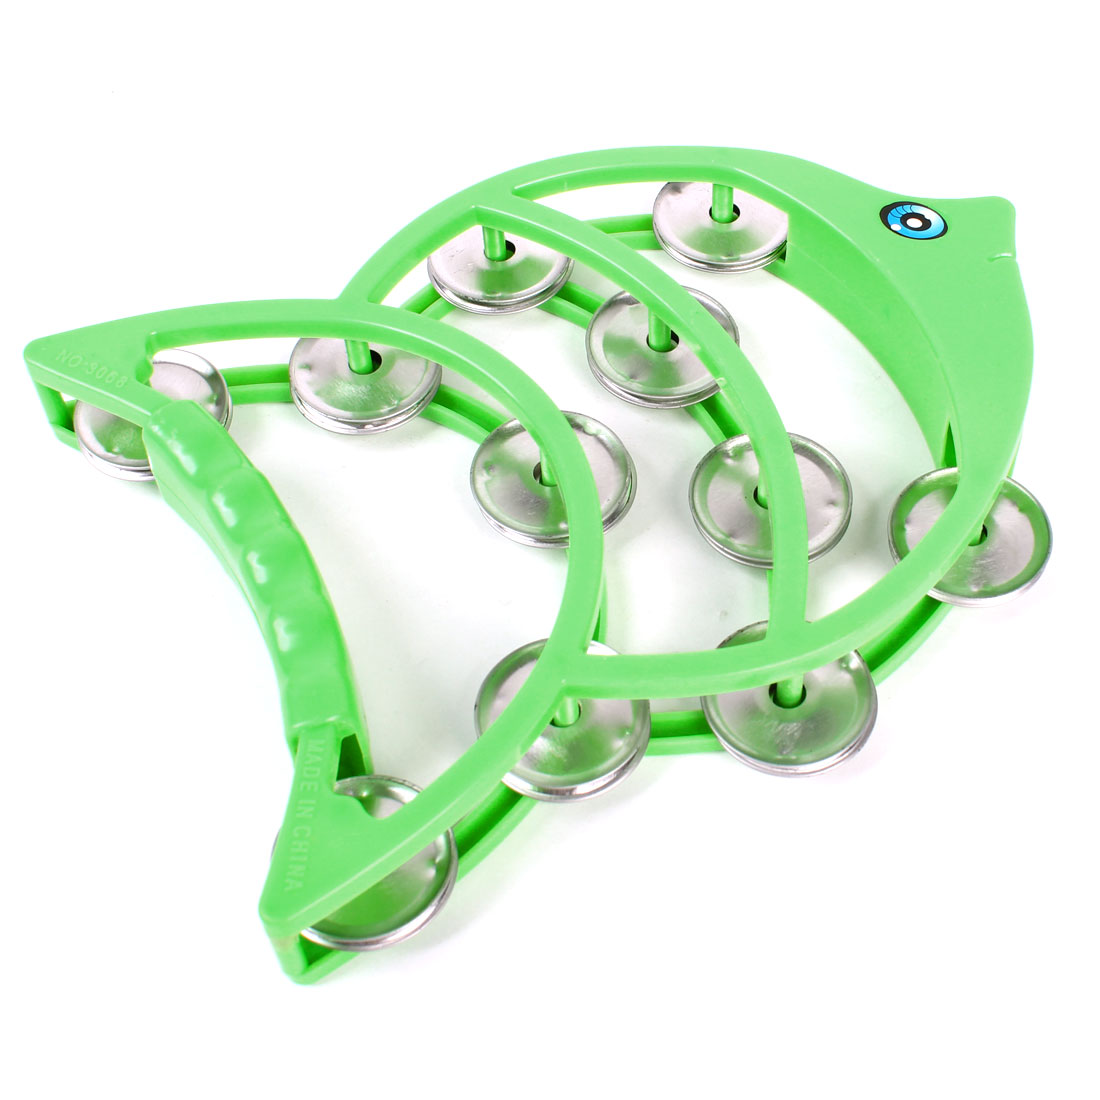 Children Metal Cymbal Fish Shape Green Plastic Tambourine Shaking Toy